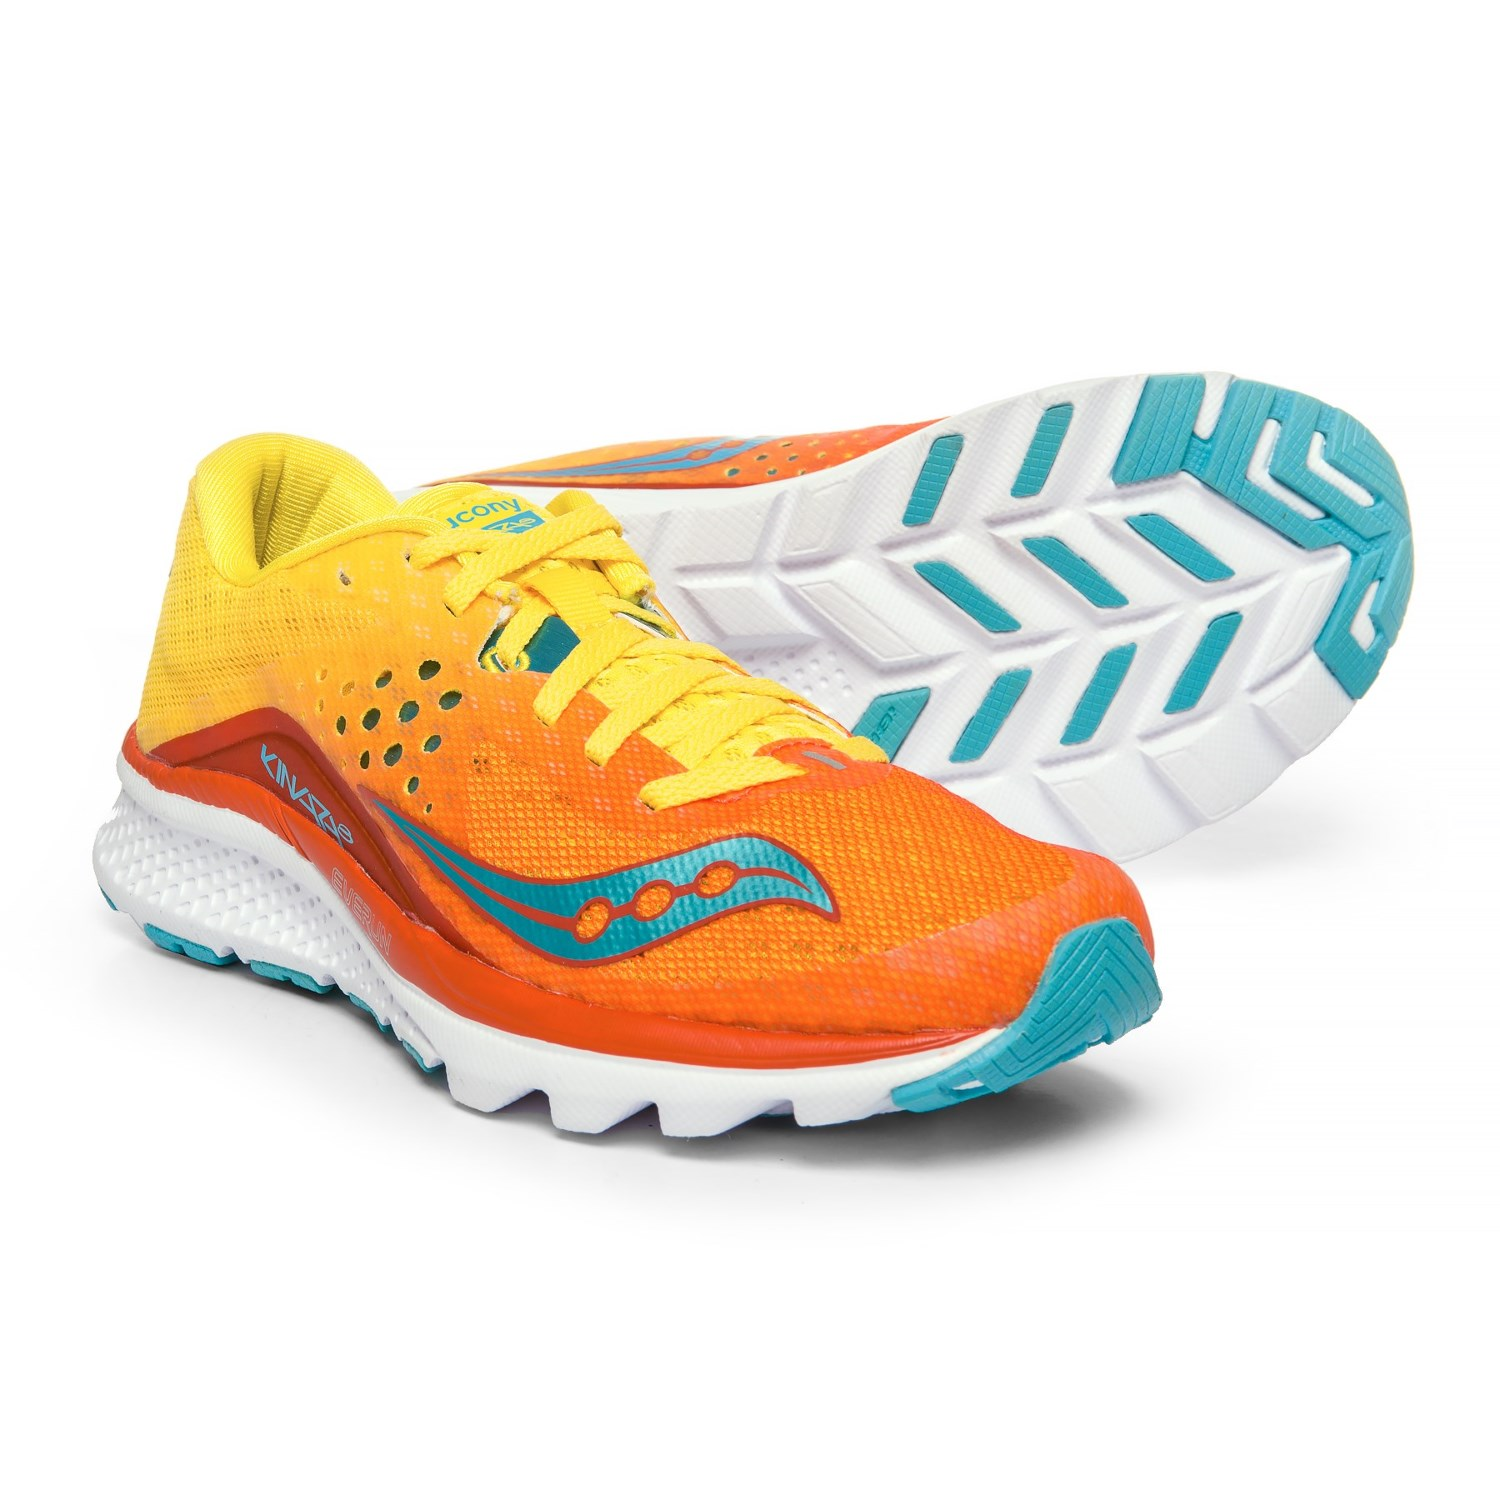 Saucony Kinvara 8 Running Shoes (For Women) in Orange Yellow Blue 91b8b4d3b